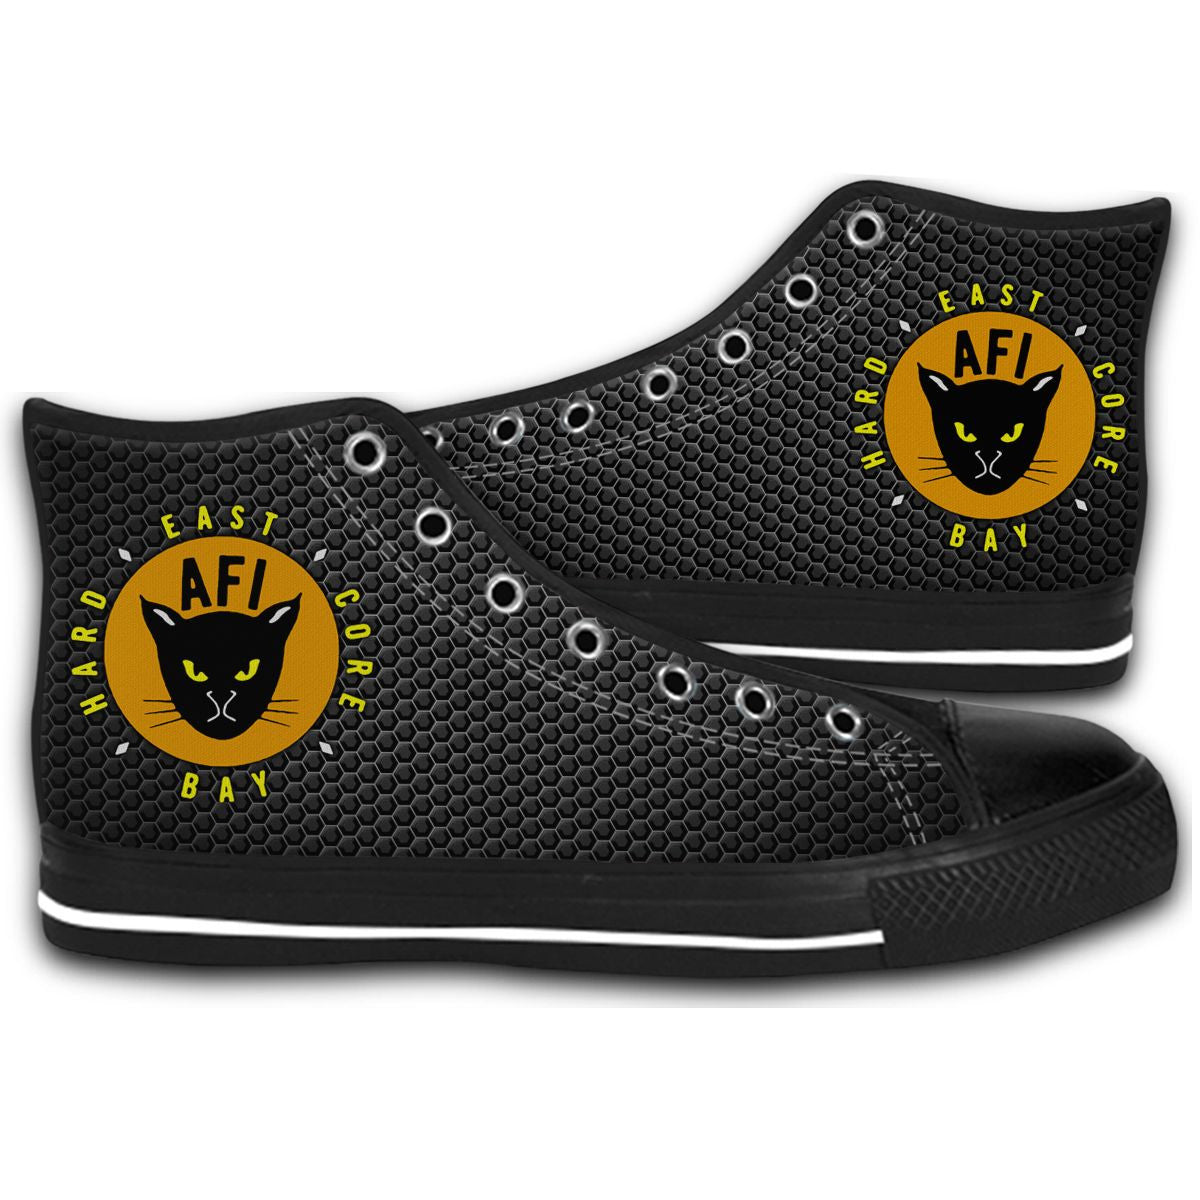 AFI EAST KITTY ROCK Music Legend CANVAS STYLE SHOES FASHION SNEAKERS